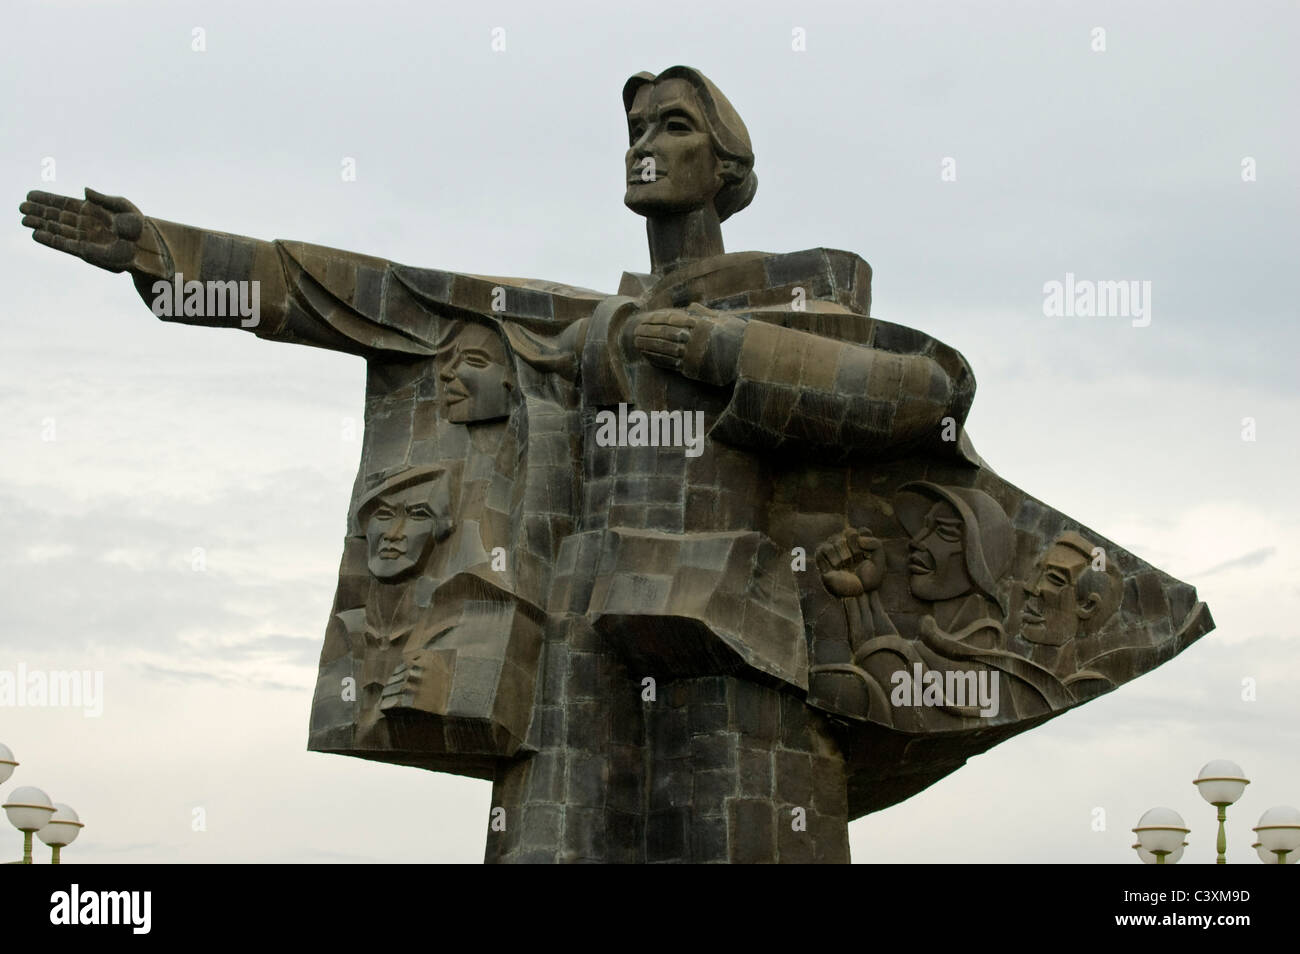 A statue displaying Socialist art. - Stock Image